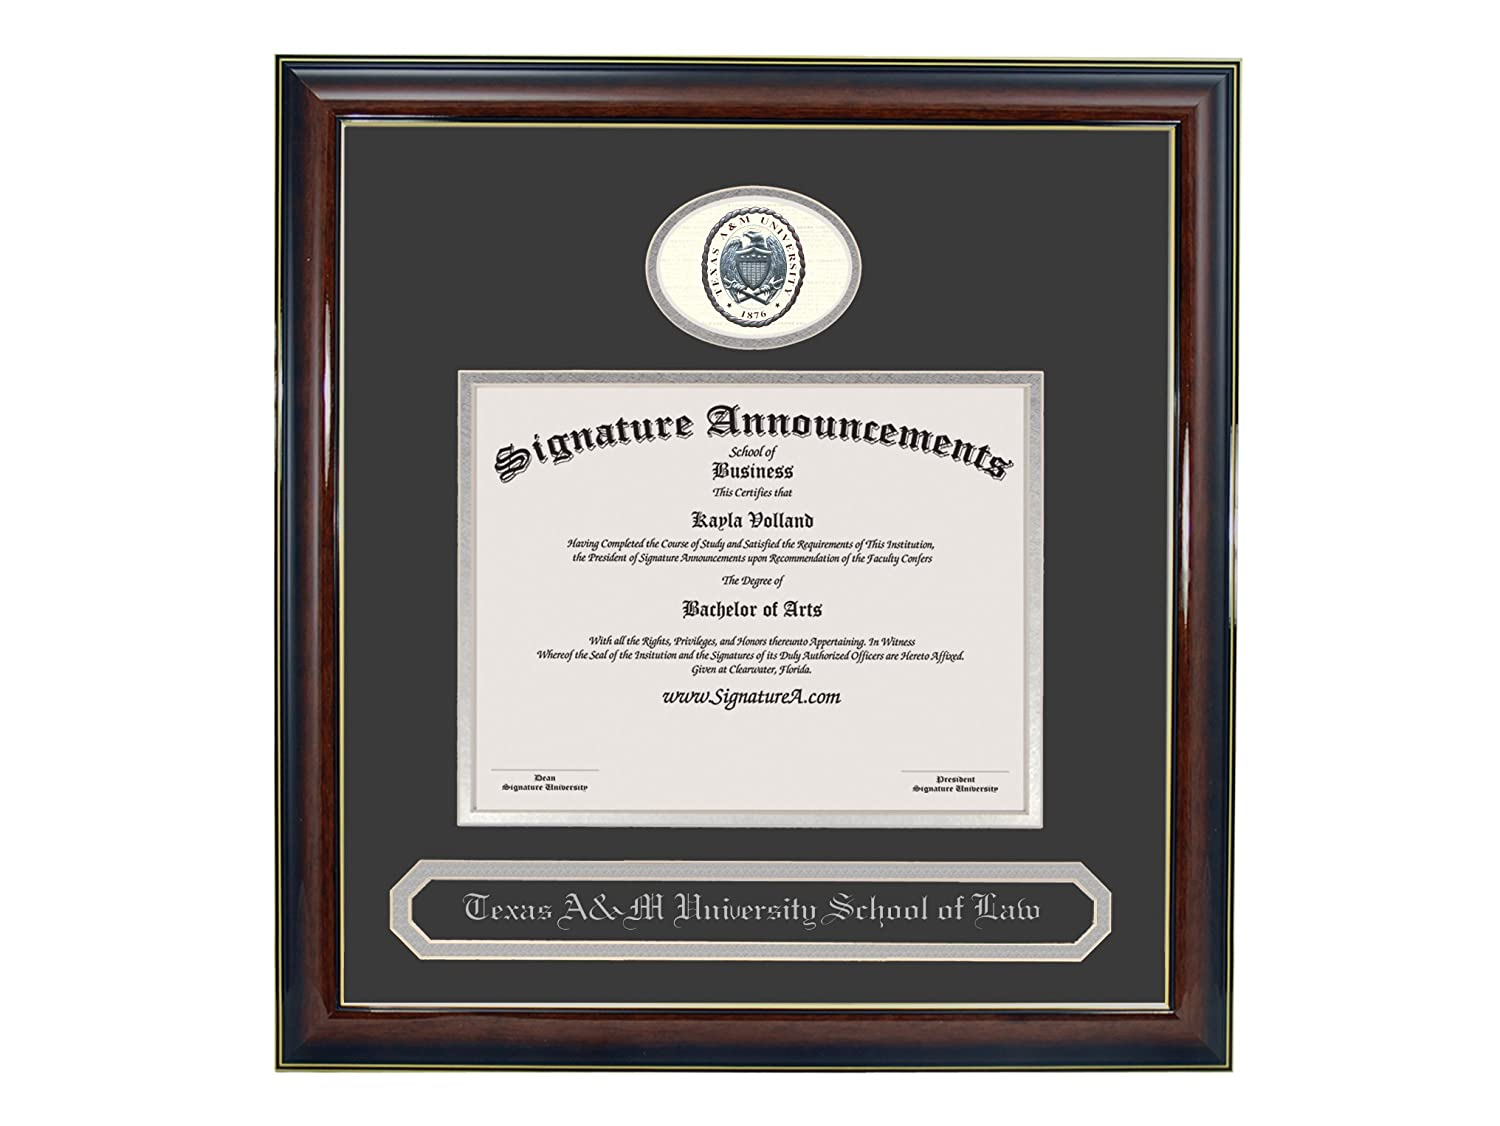 Sculpted Foil Seal /& Name Graduation Diploma Frame 20 x 20 Gloss Mahogany with Gold Accent Signature Announcements Texas-A/&M-University-School-of-Law Undergraduate